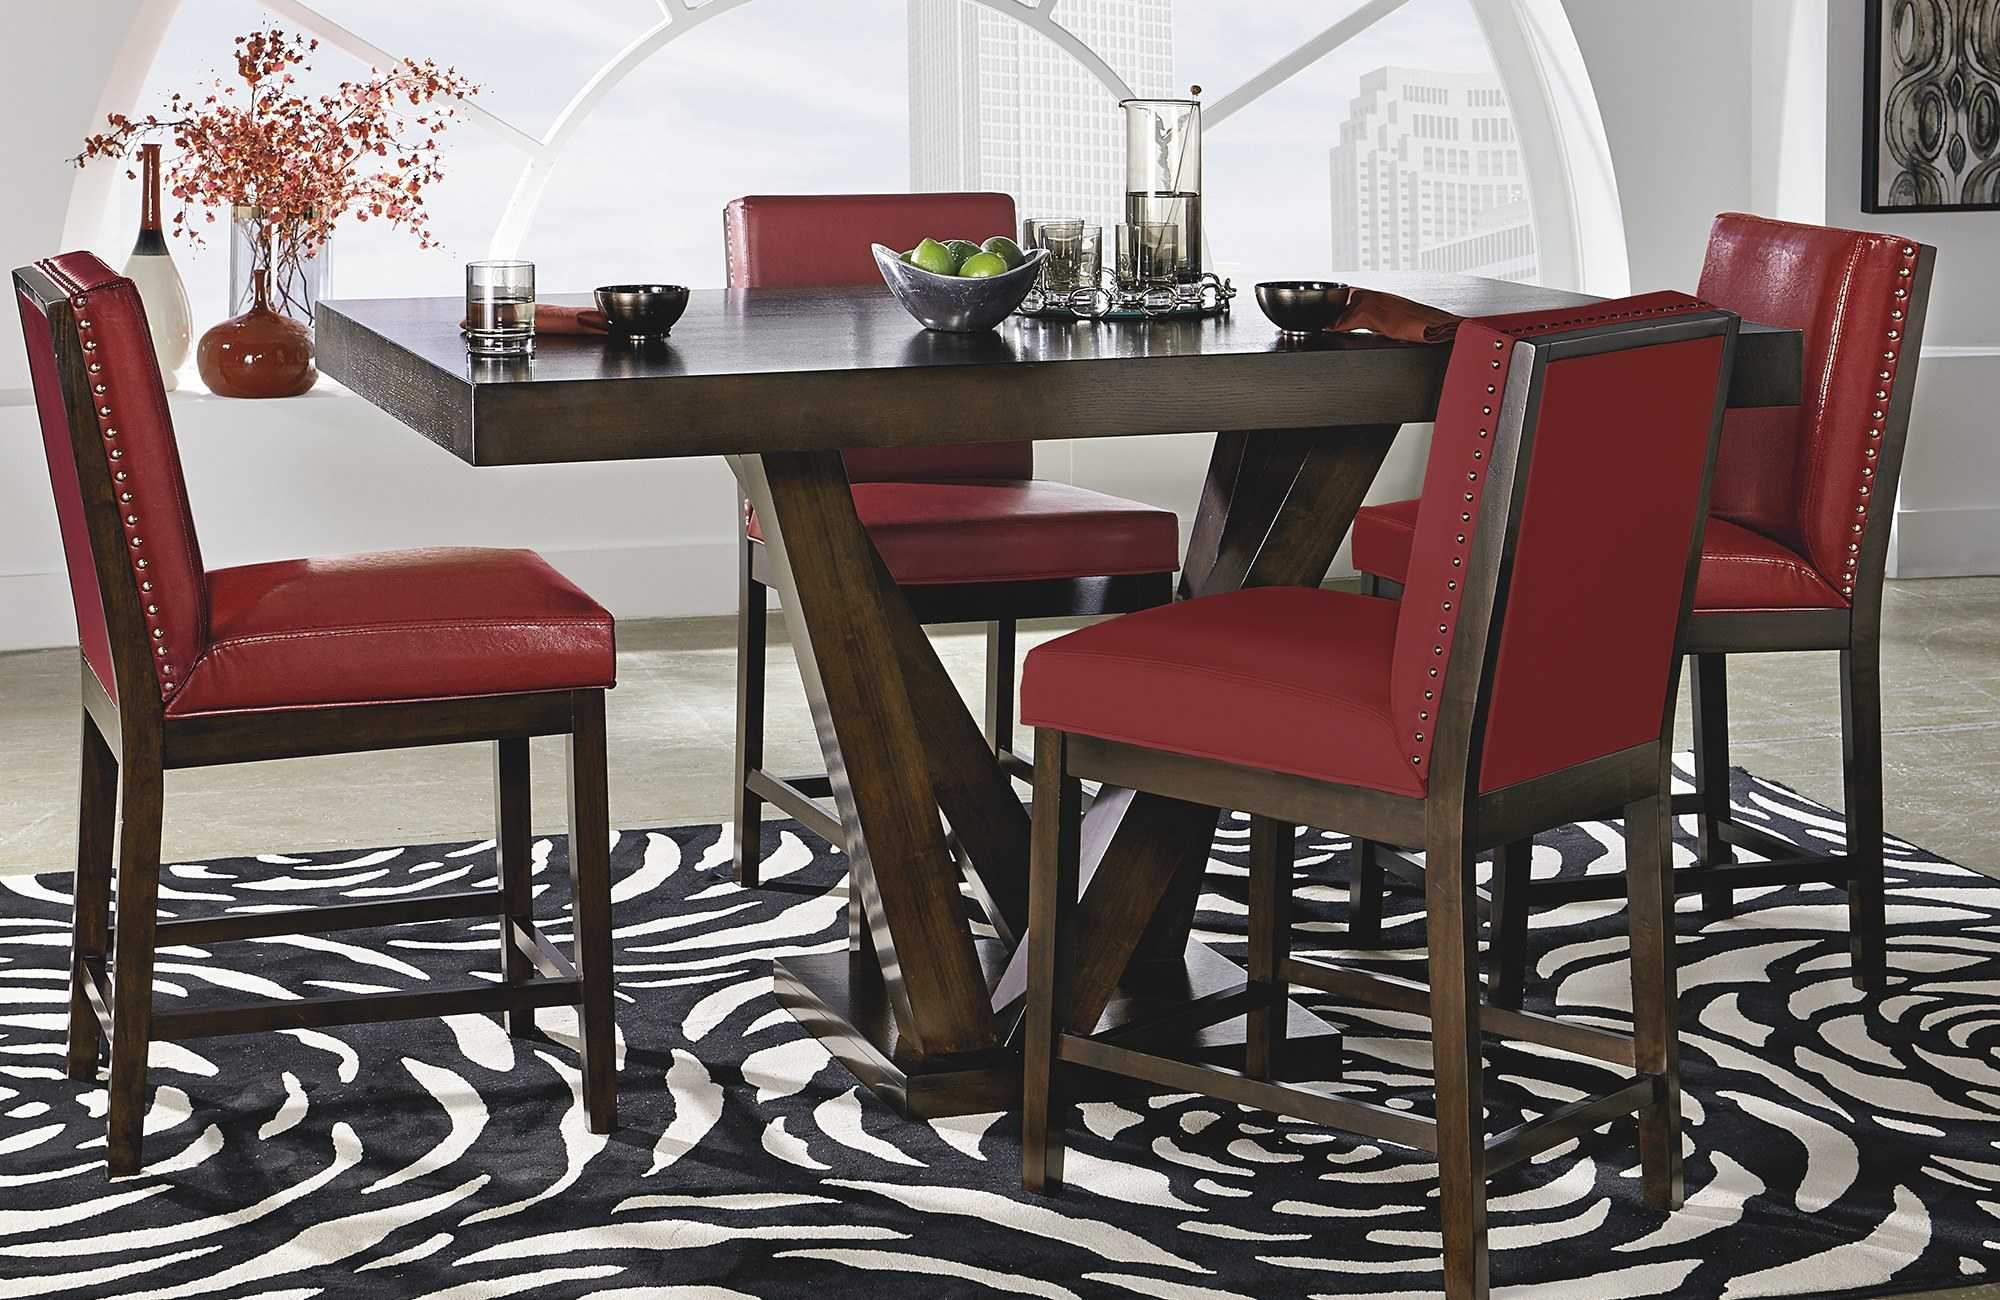 Tips to Decorate Dining Chairs on Christmas